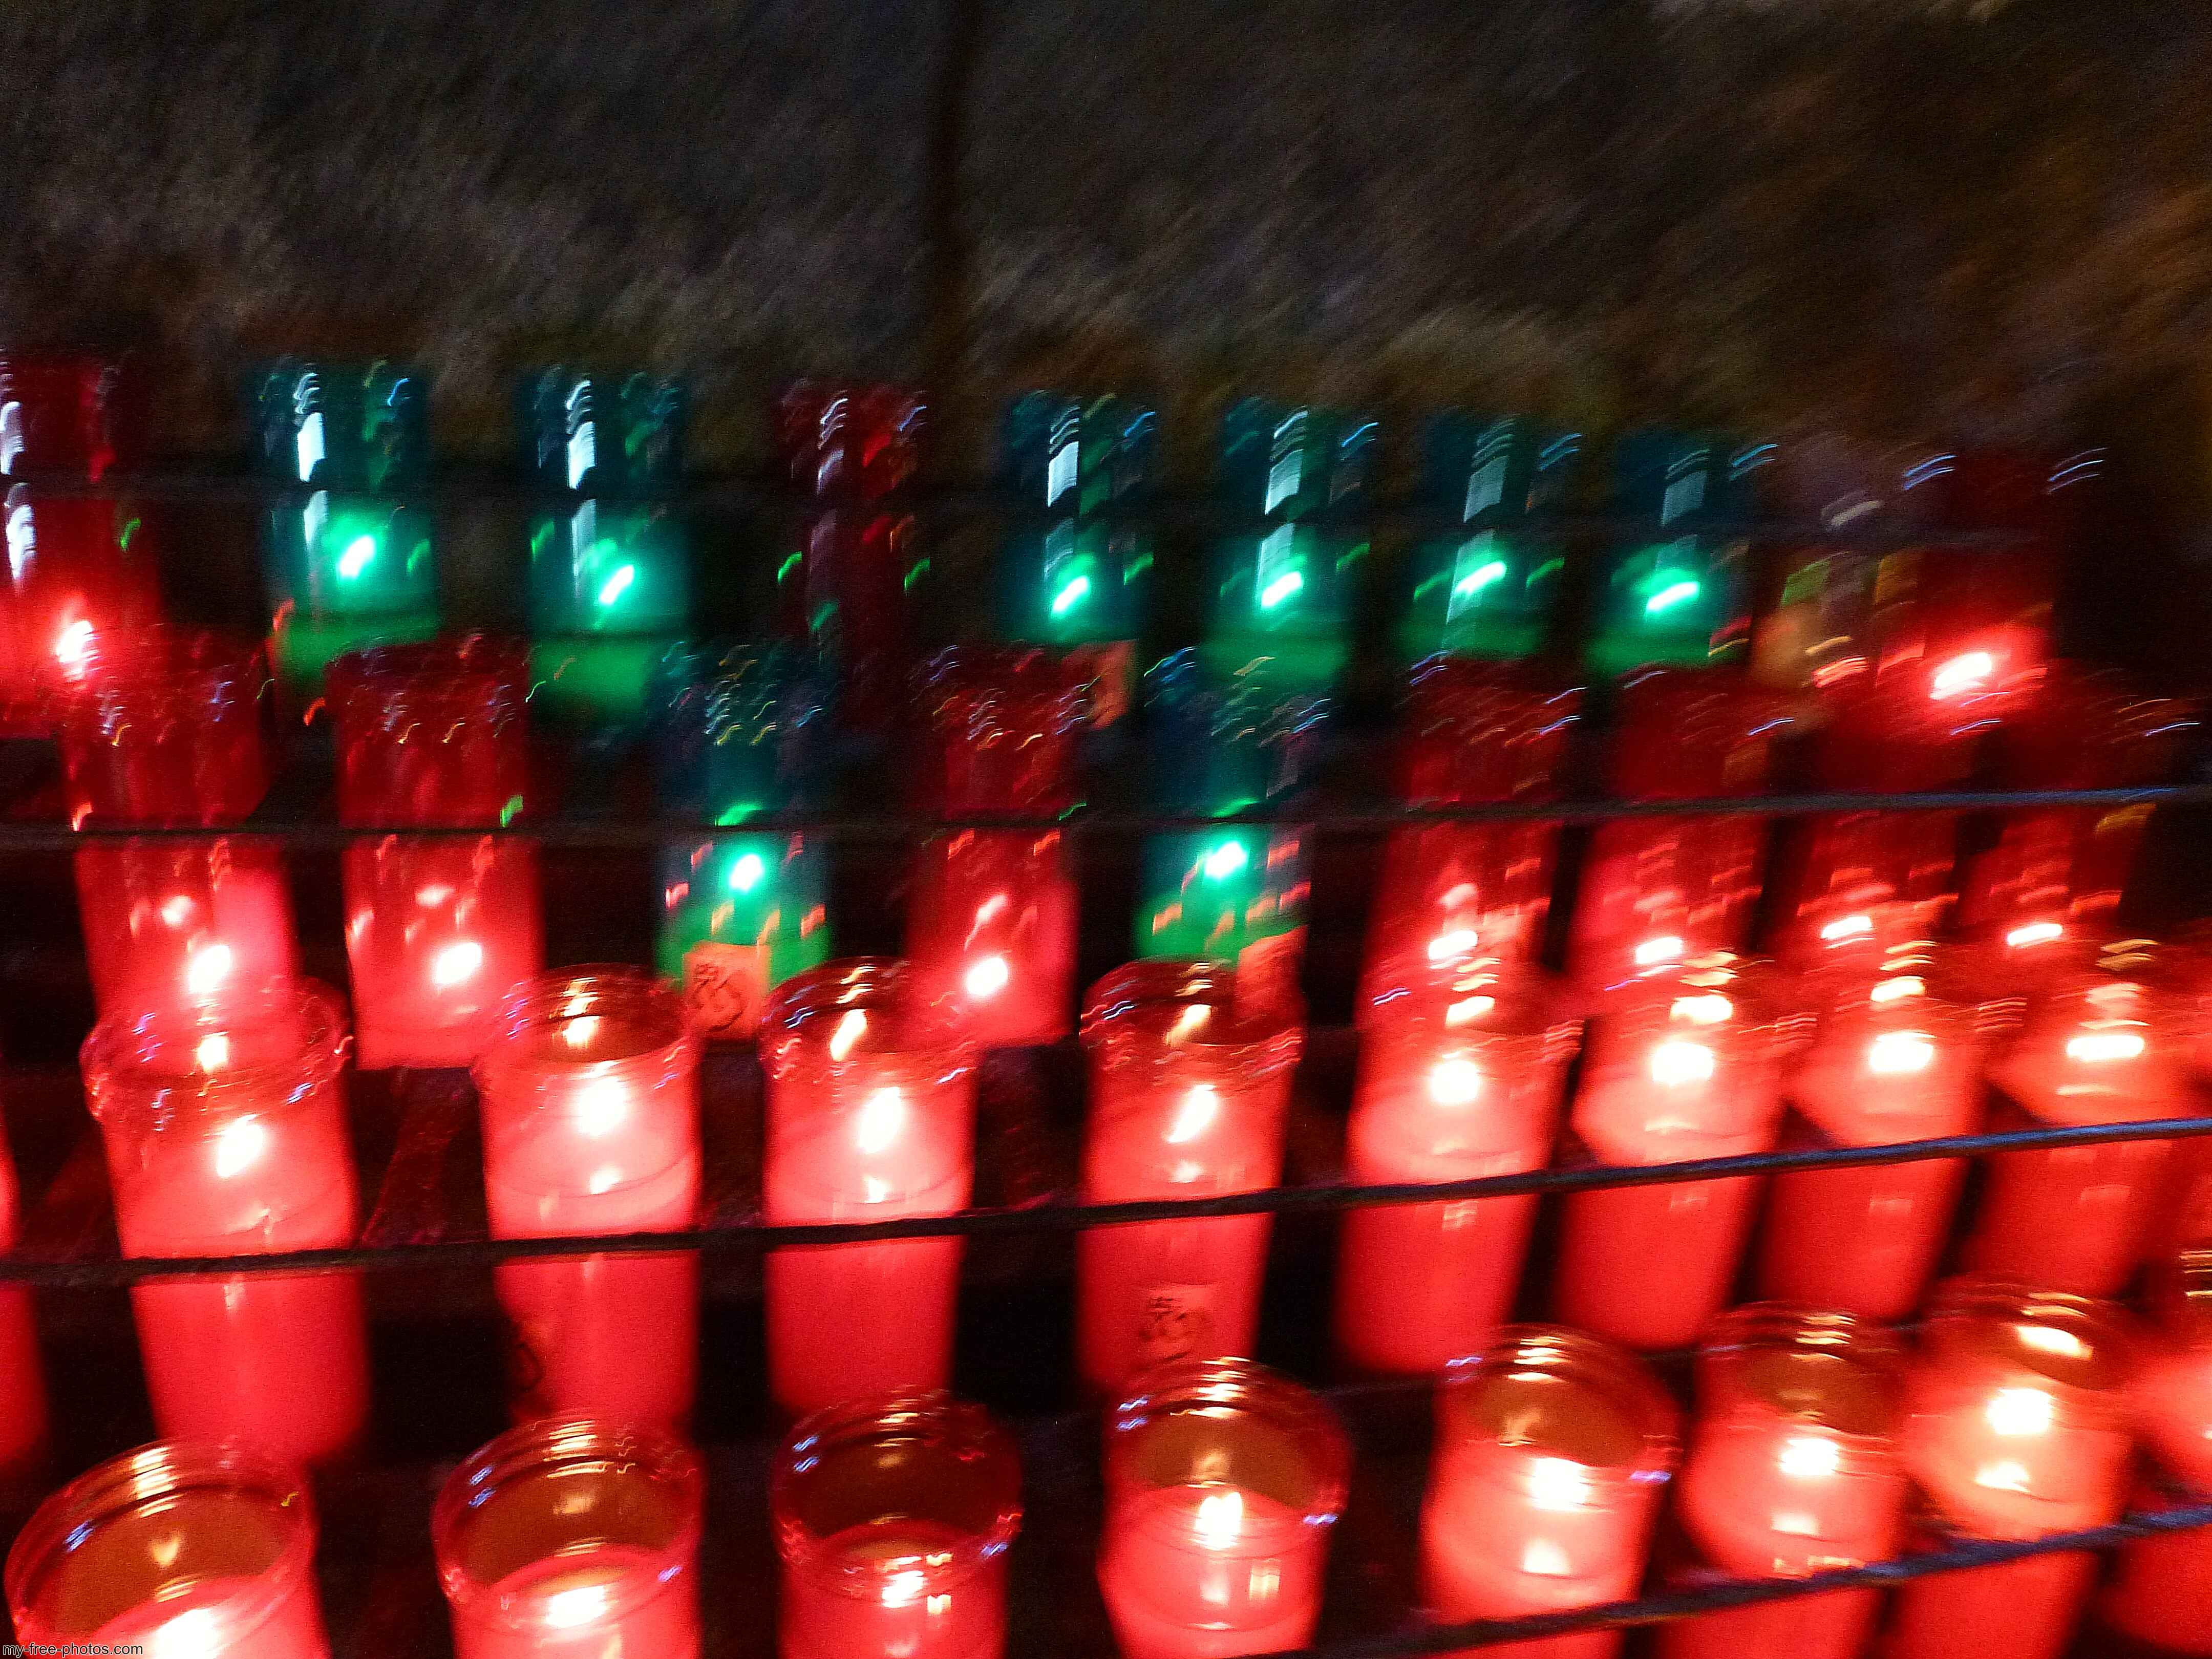 Montserrat, Spain, Prayer candles